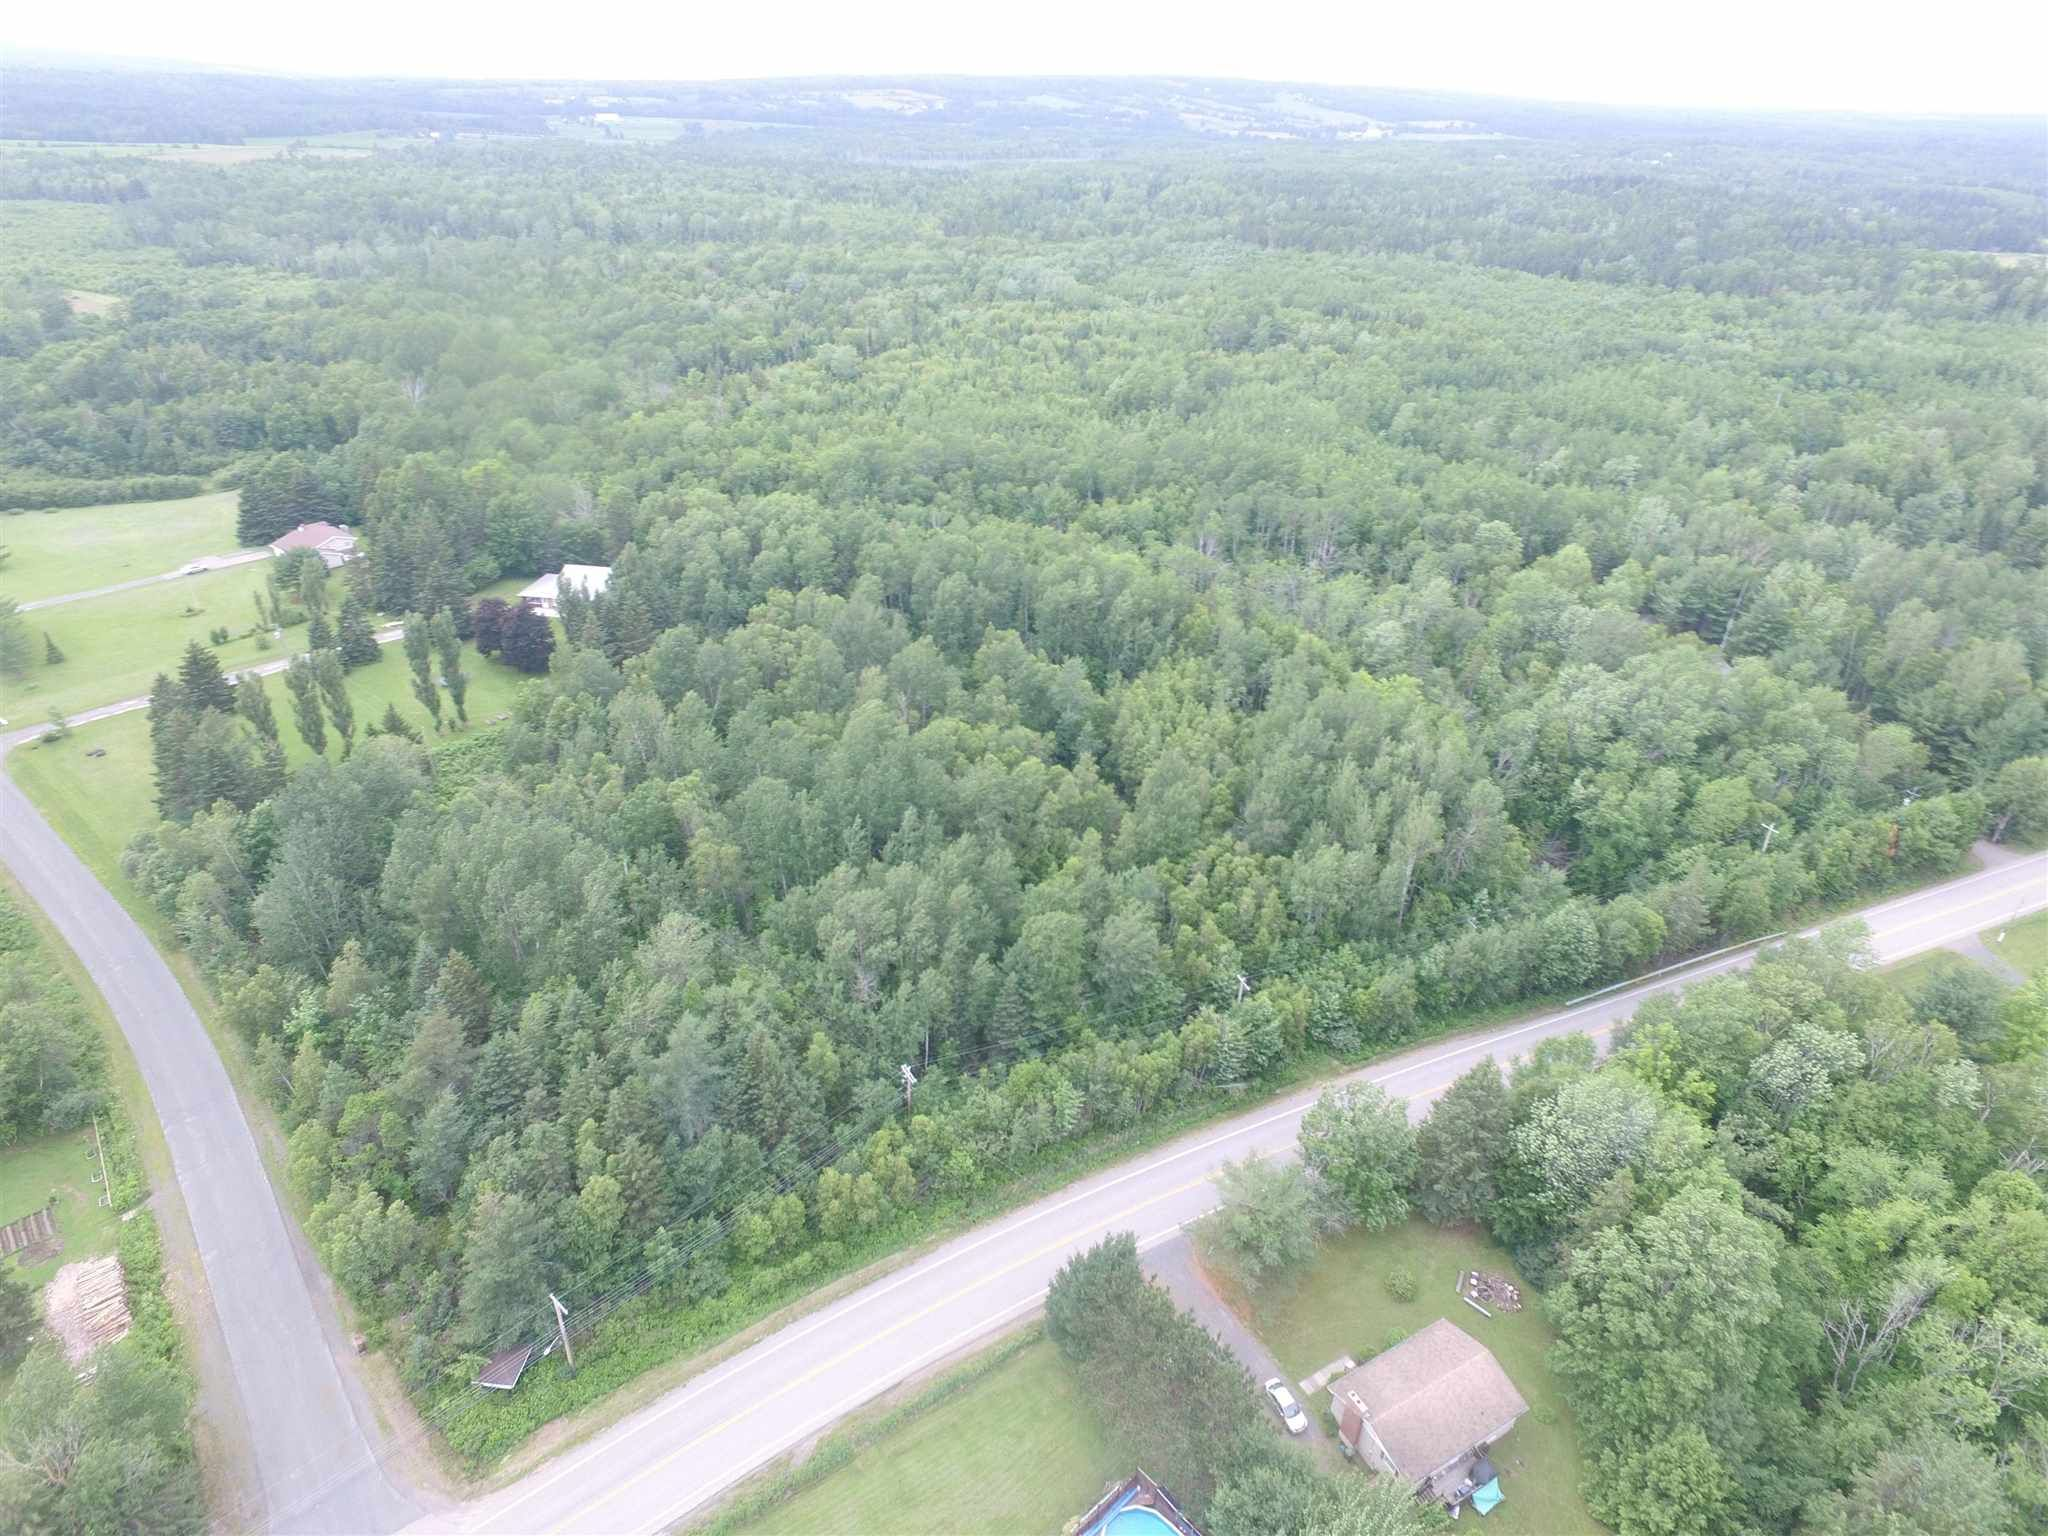 Main Photo: Lot 4 Quarry Brook Drive in Durham: 108-Rural Pictou County Vacant Land for sale (Northern Region)  : MLS®# 202117805